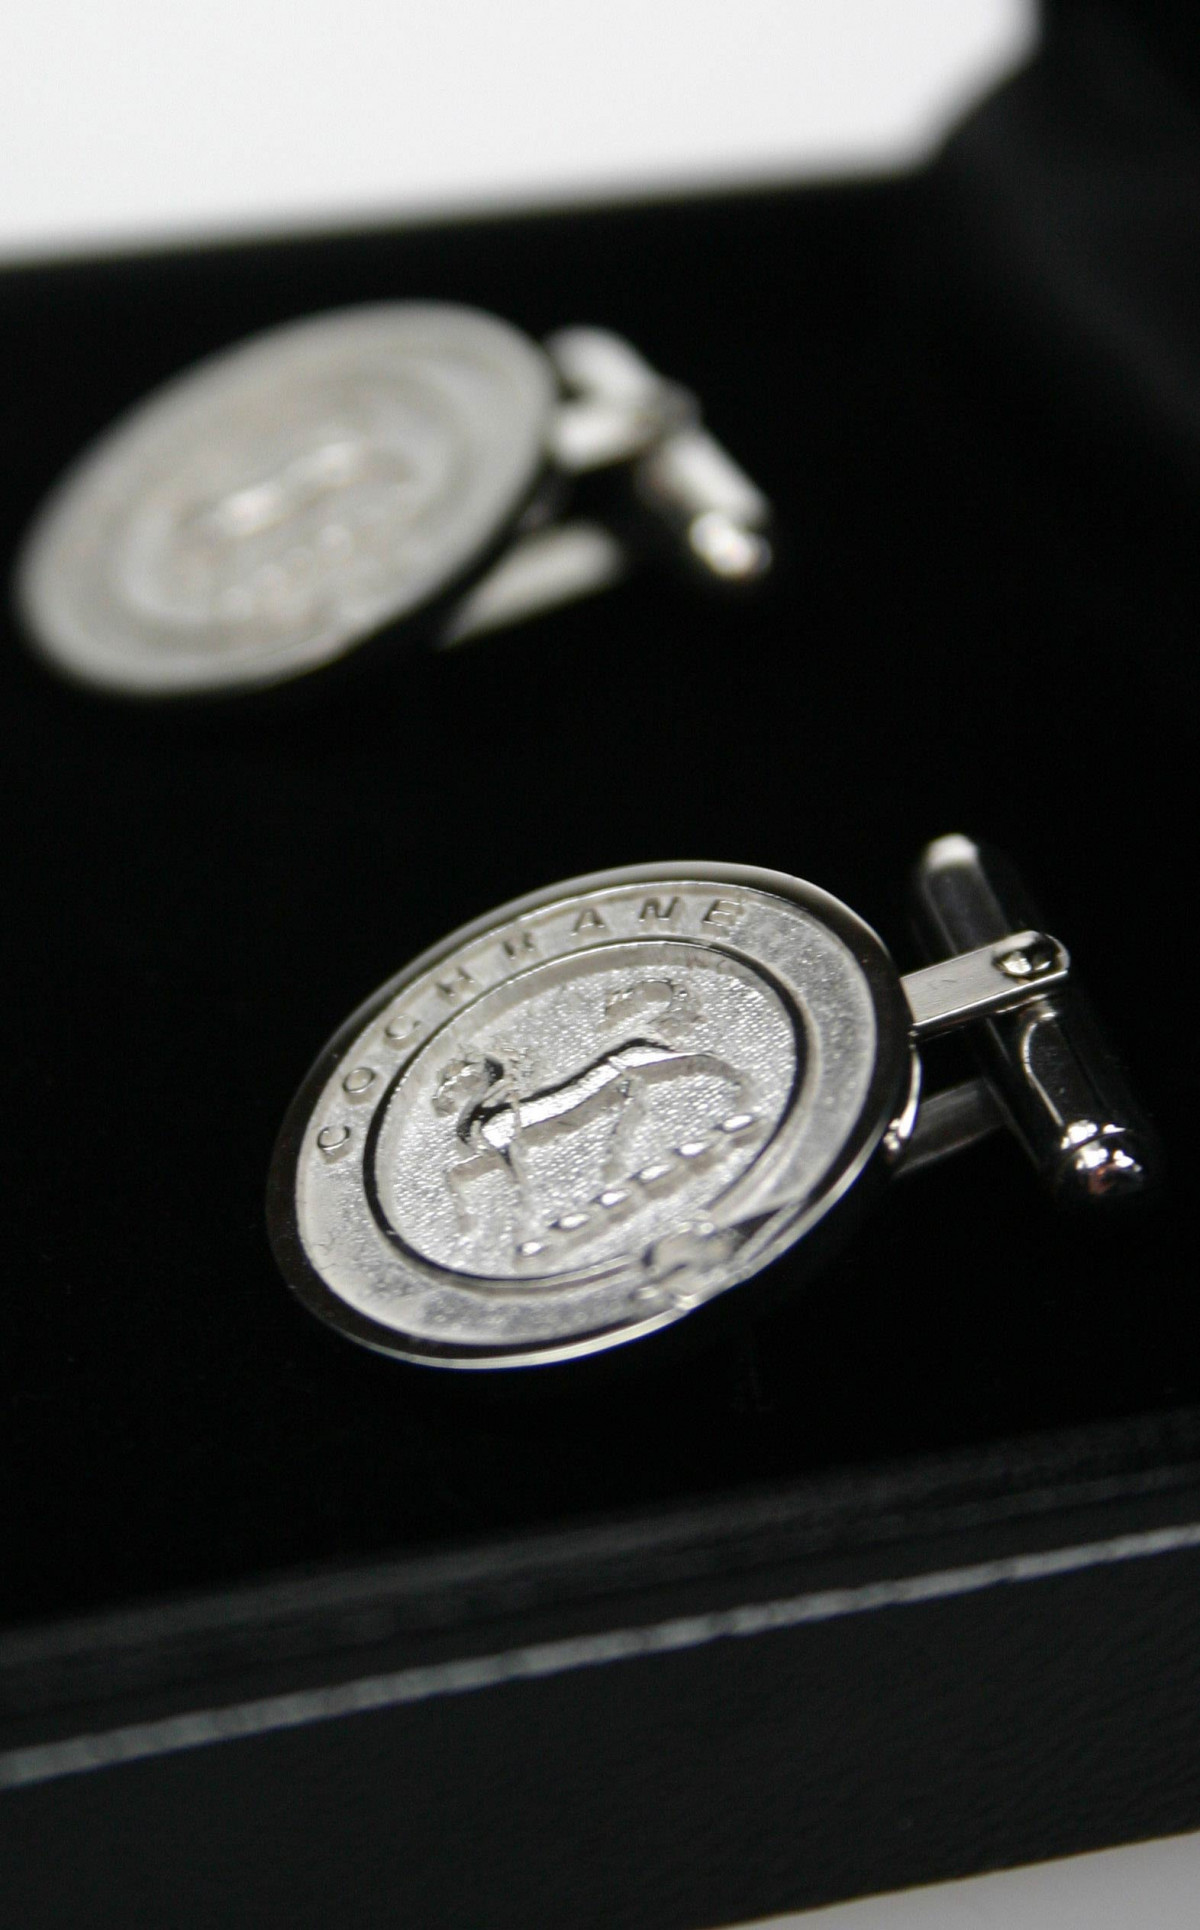 celtc-sr_celtc_CL2_round_scottish_cuff_links_2